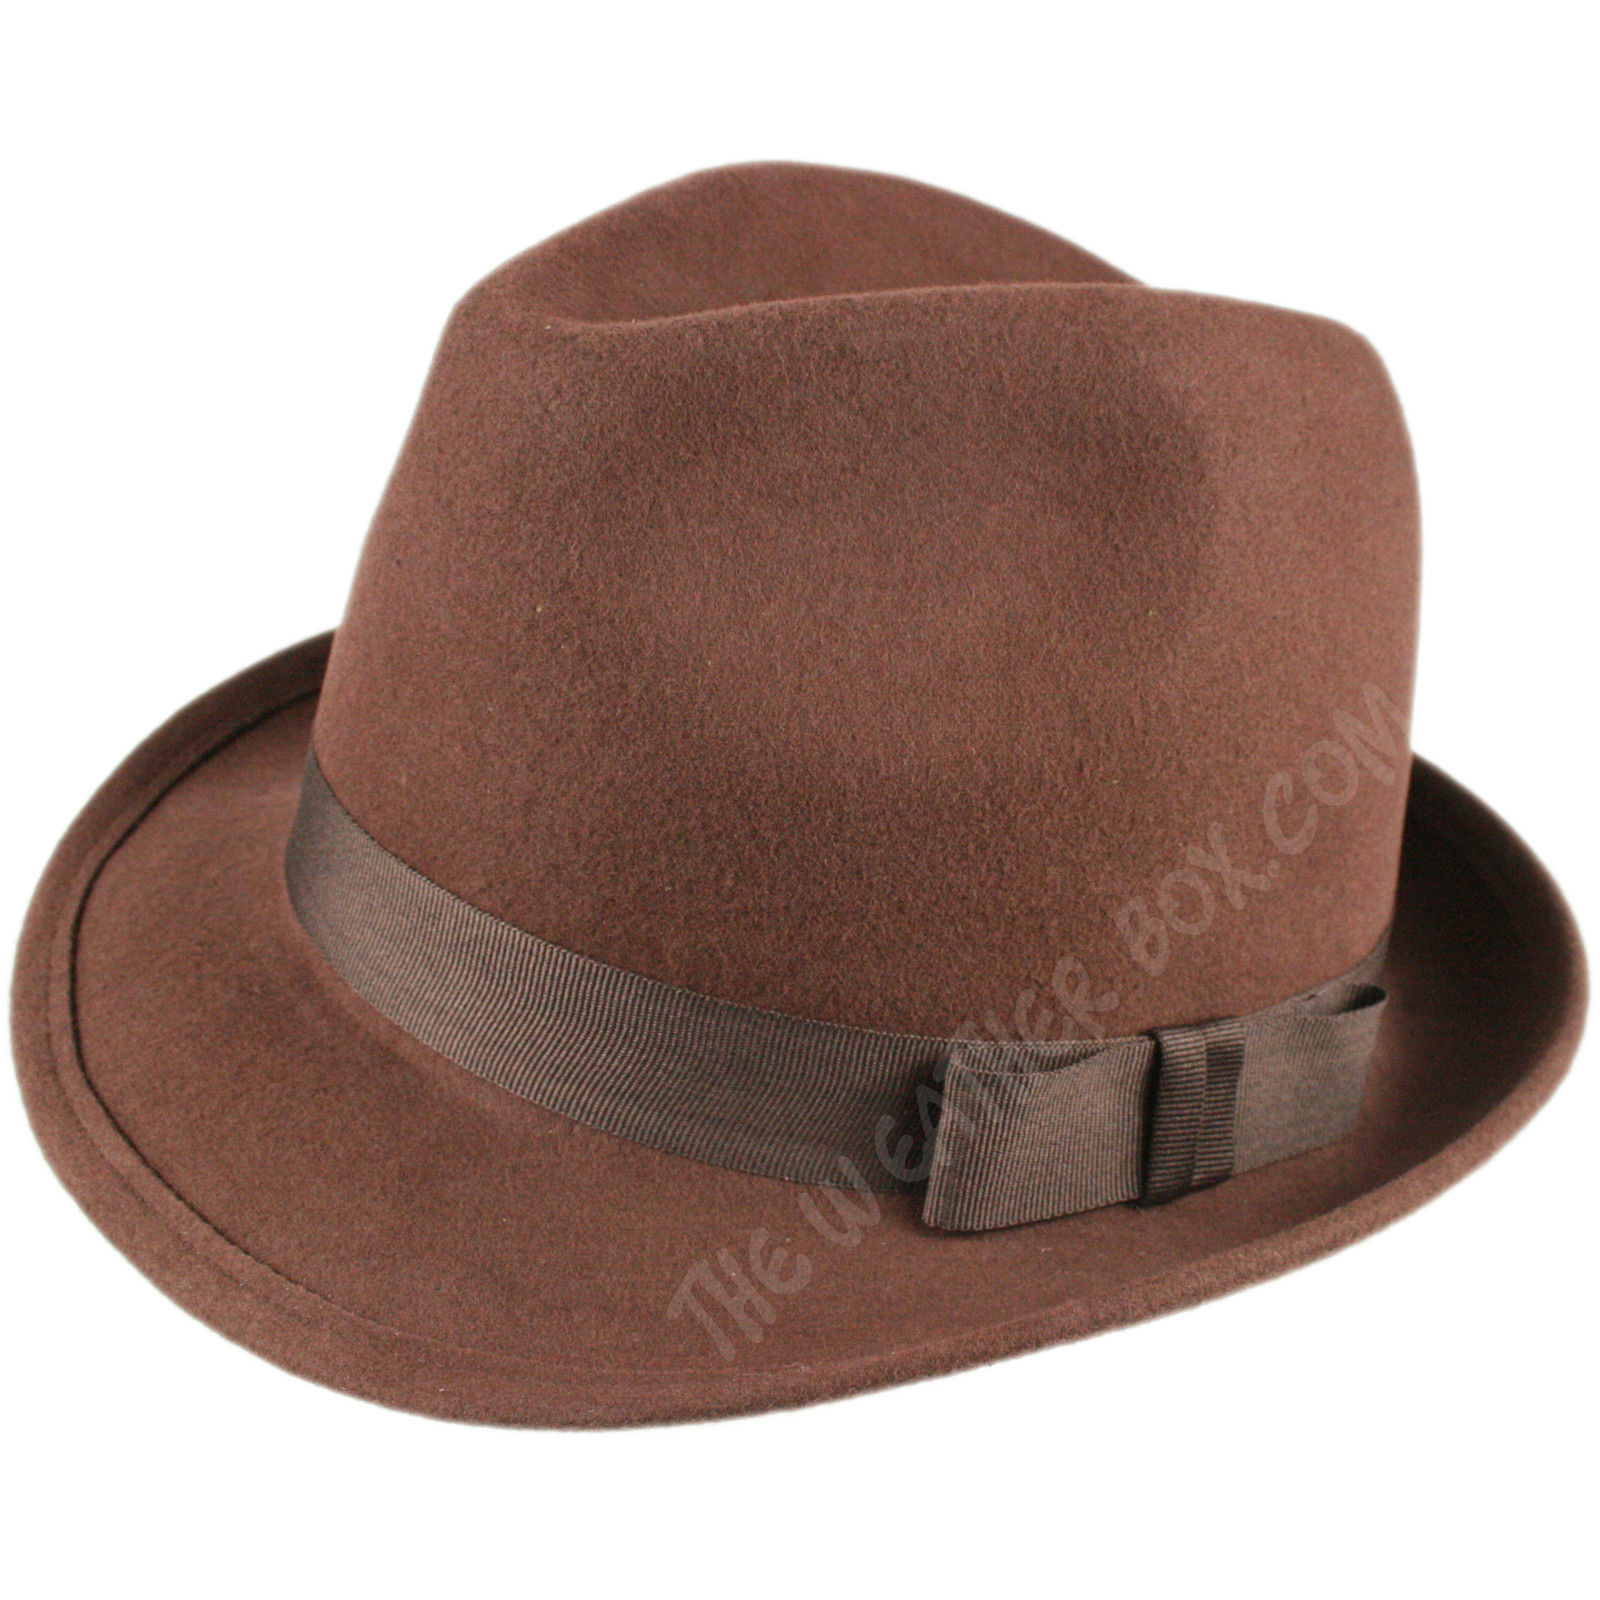 Trilby hats are usually made from tweed or straw, making them wearable and transferable through many seasons, from spring to summer to autumn. What is a Fedora? A fedora hat is known for being cool, classic, and ultimately, a timeless accessory item for men.